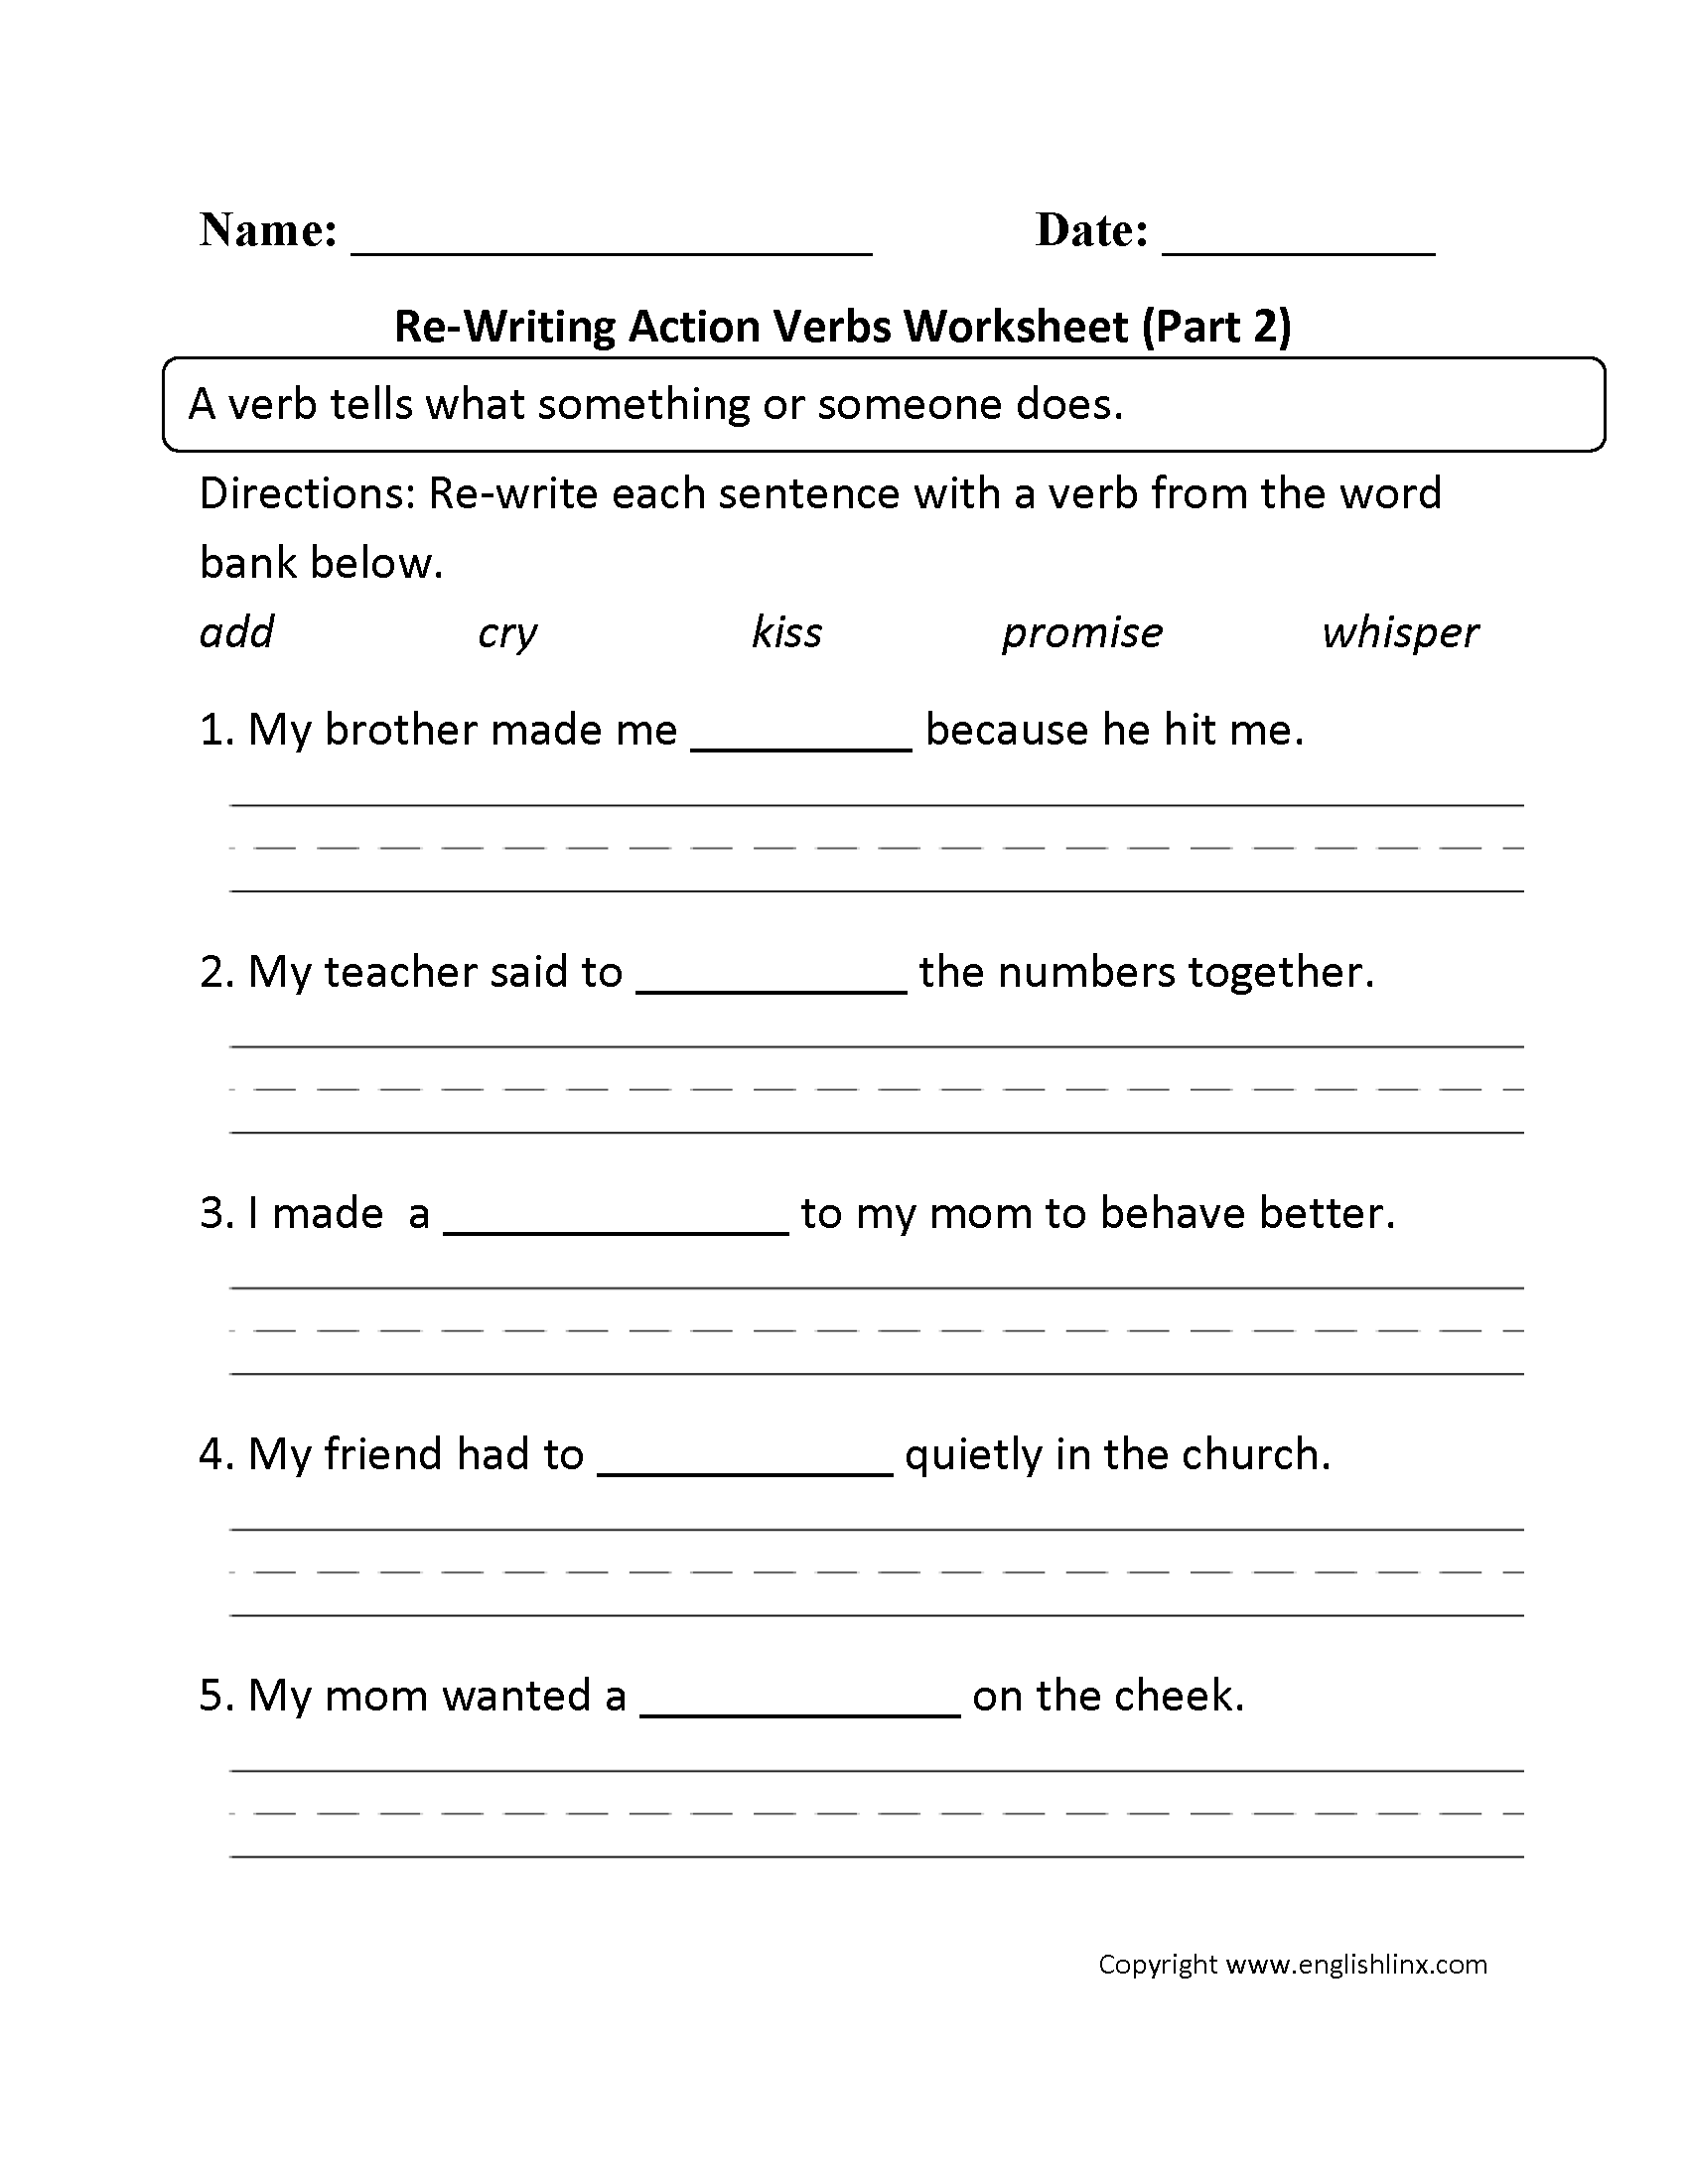 Verbs Worksheet Grade 2 The Best Worksheets Image Collection